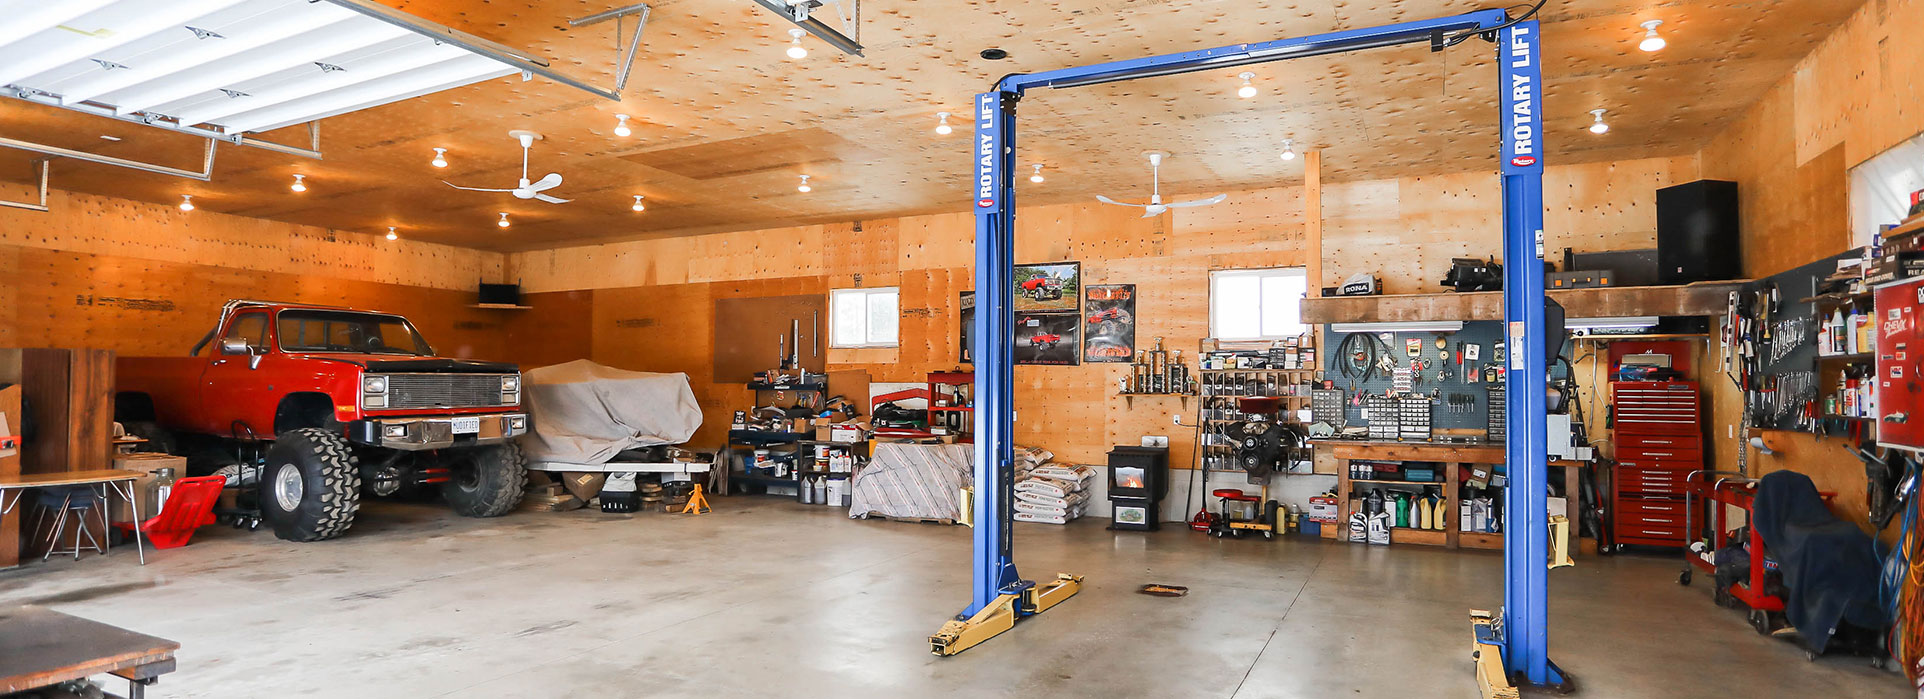 5870 Concession 2 - Interior of Detached Garage - Cripps Realty